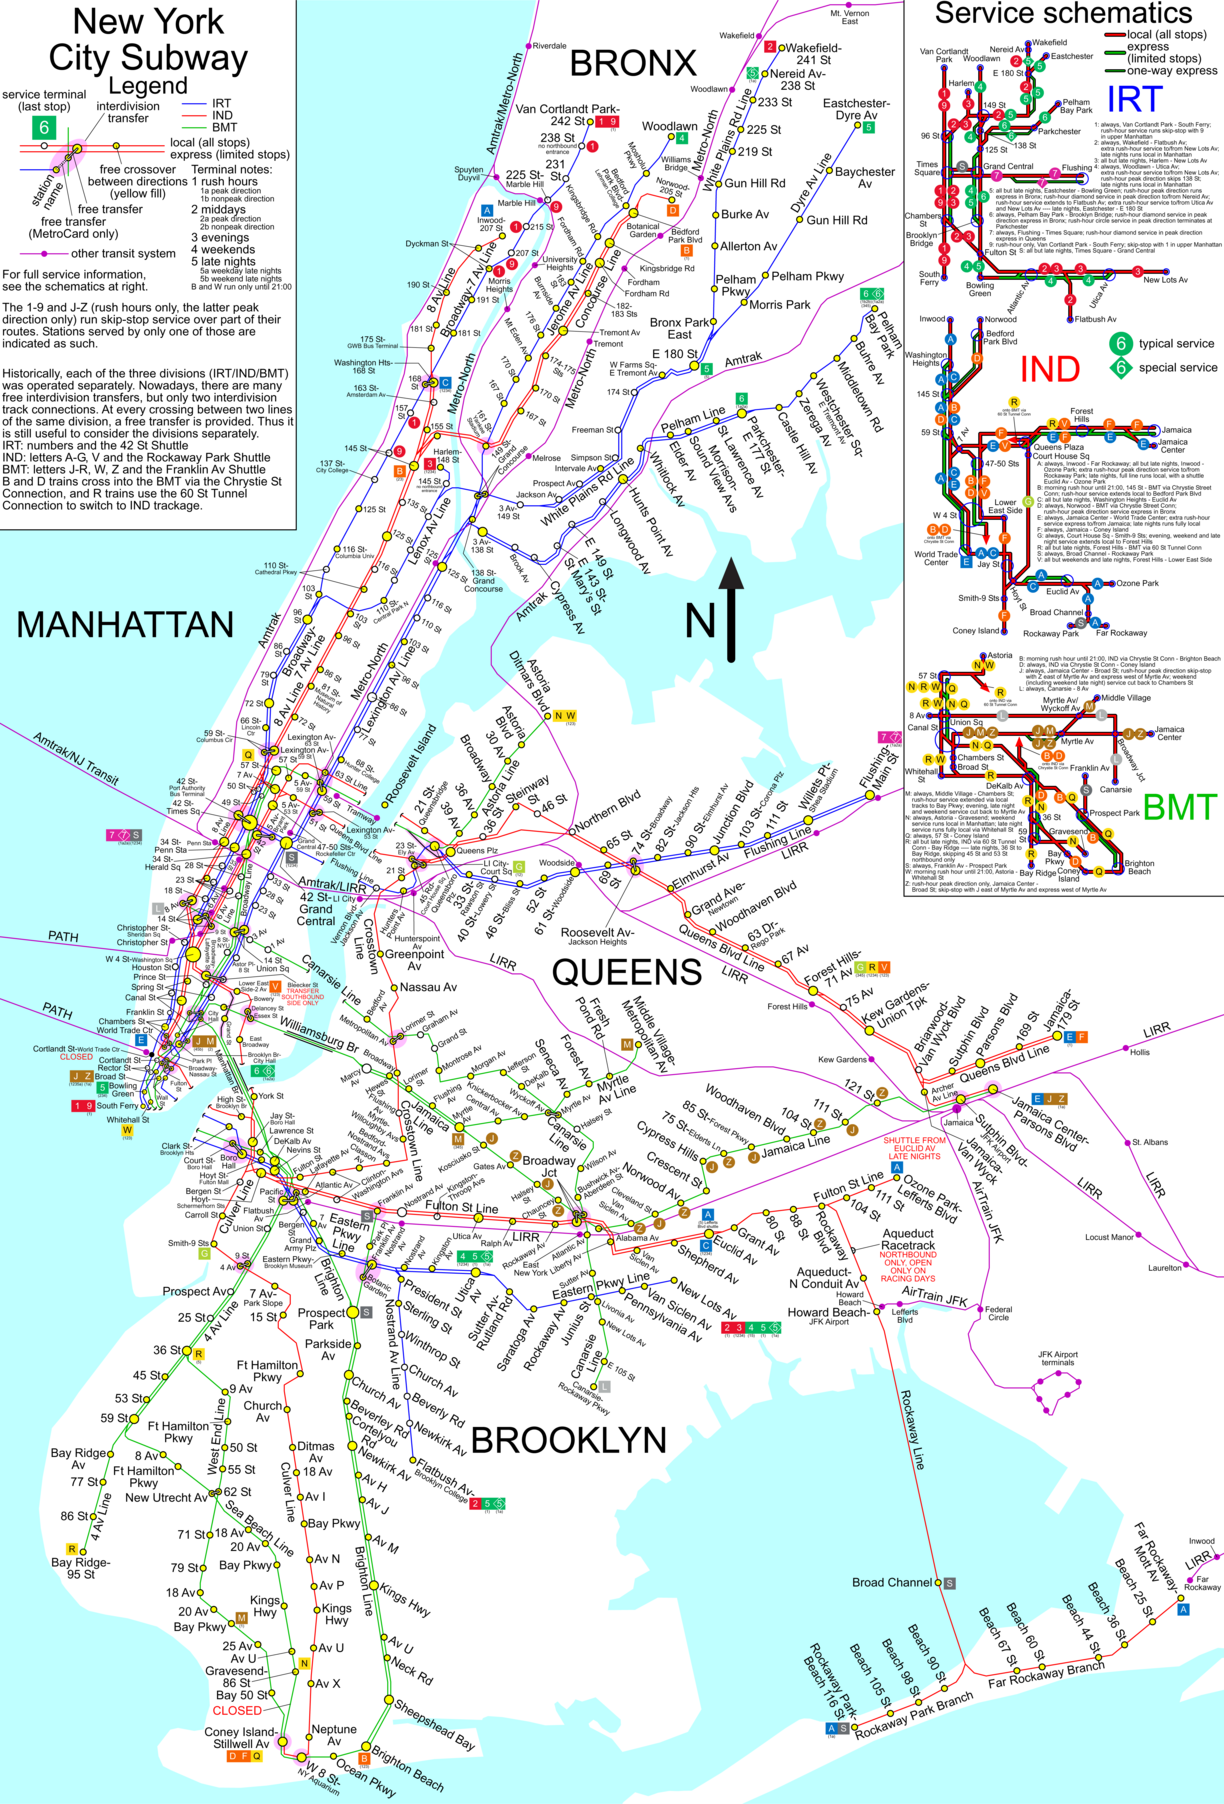 Latest Nyc Subway Map.Www Nycsubway Org New York City Subway Route Map By Spui